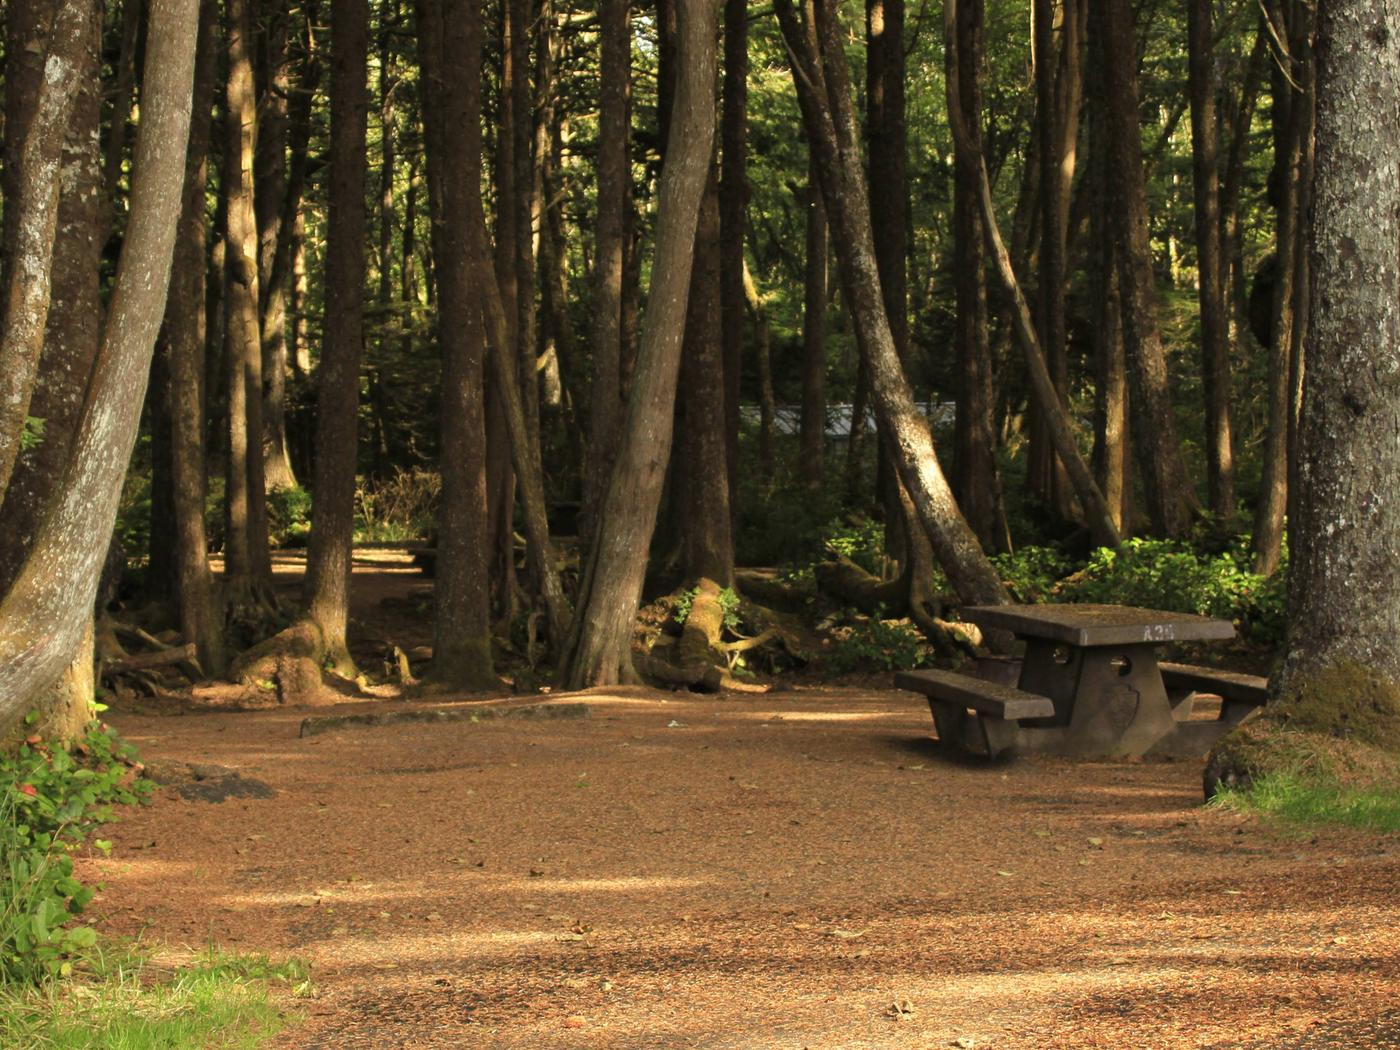 Picture of campsite with picnic tableCampsite A30